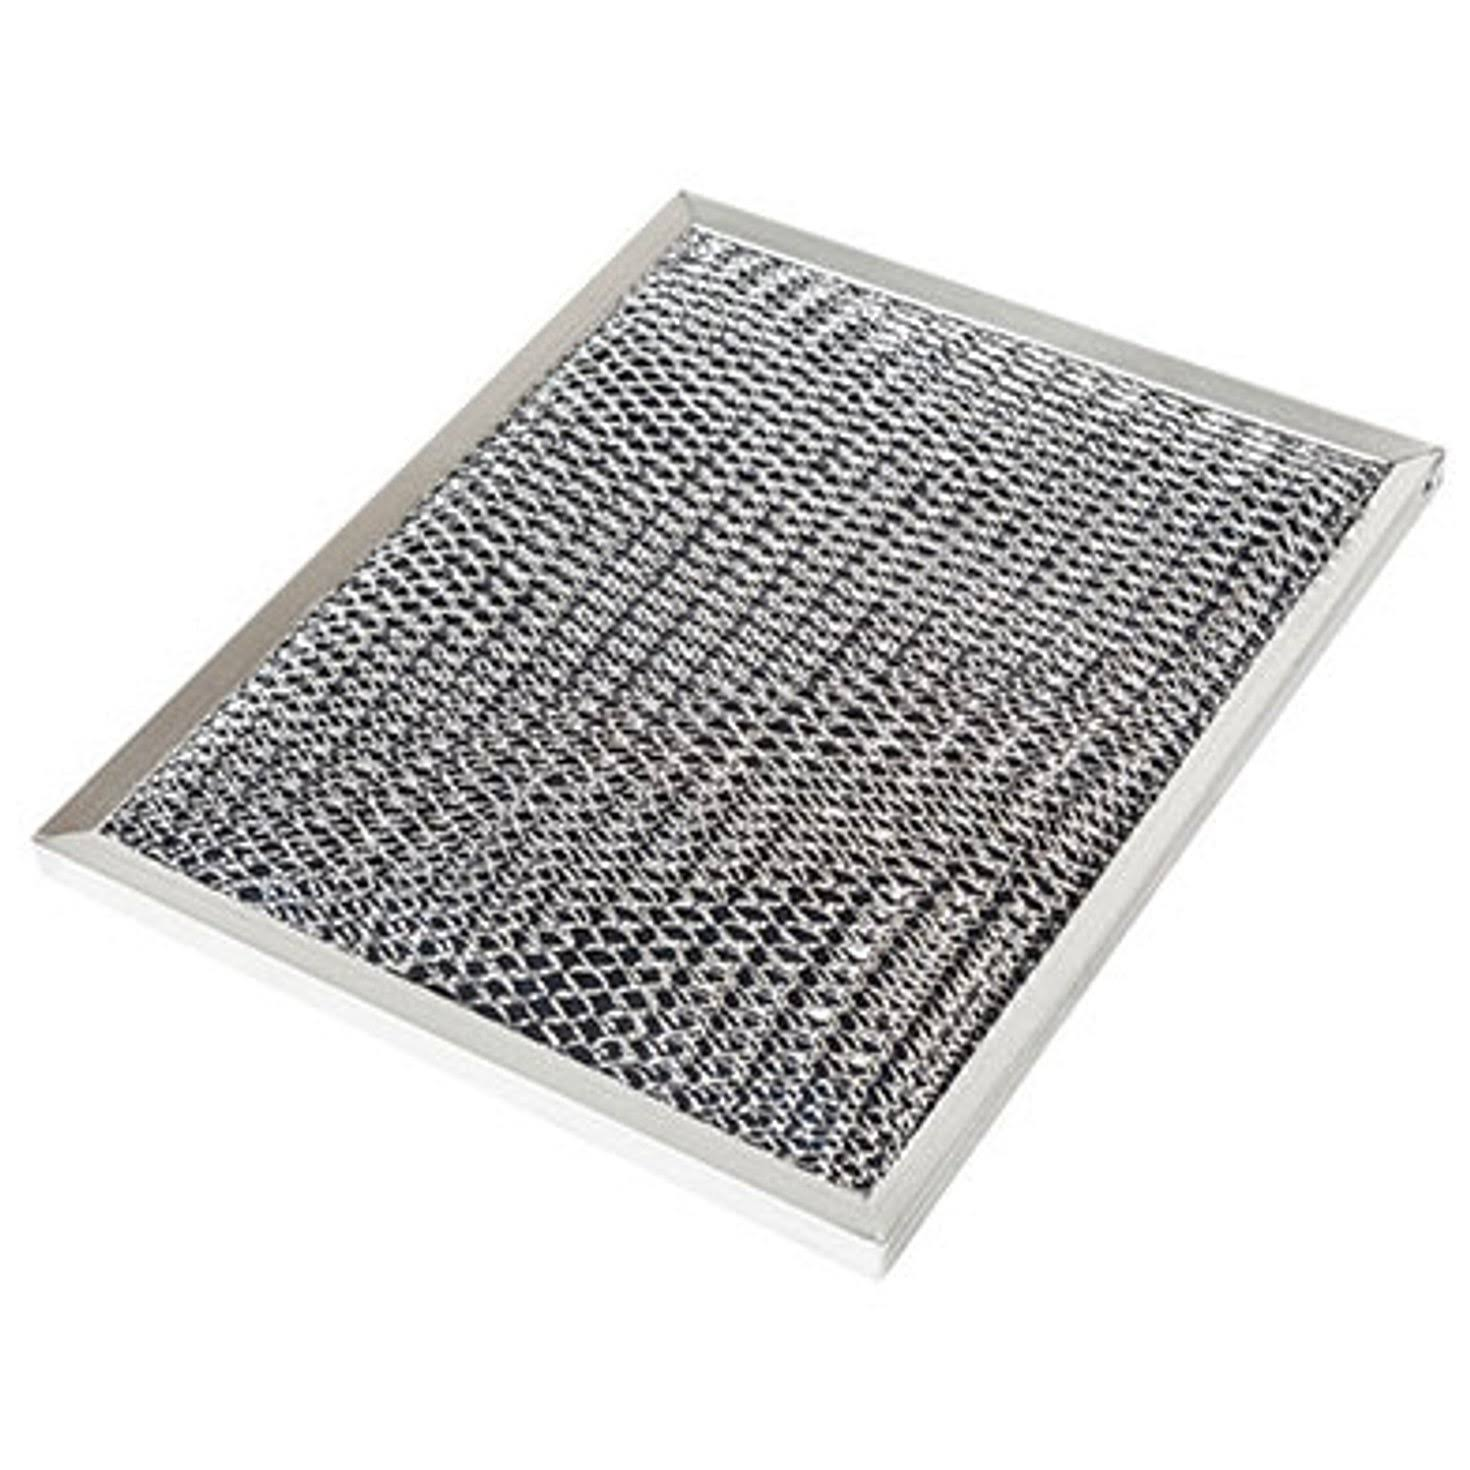 Broan 41F Non Ducted Airflow Systems Filter